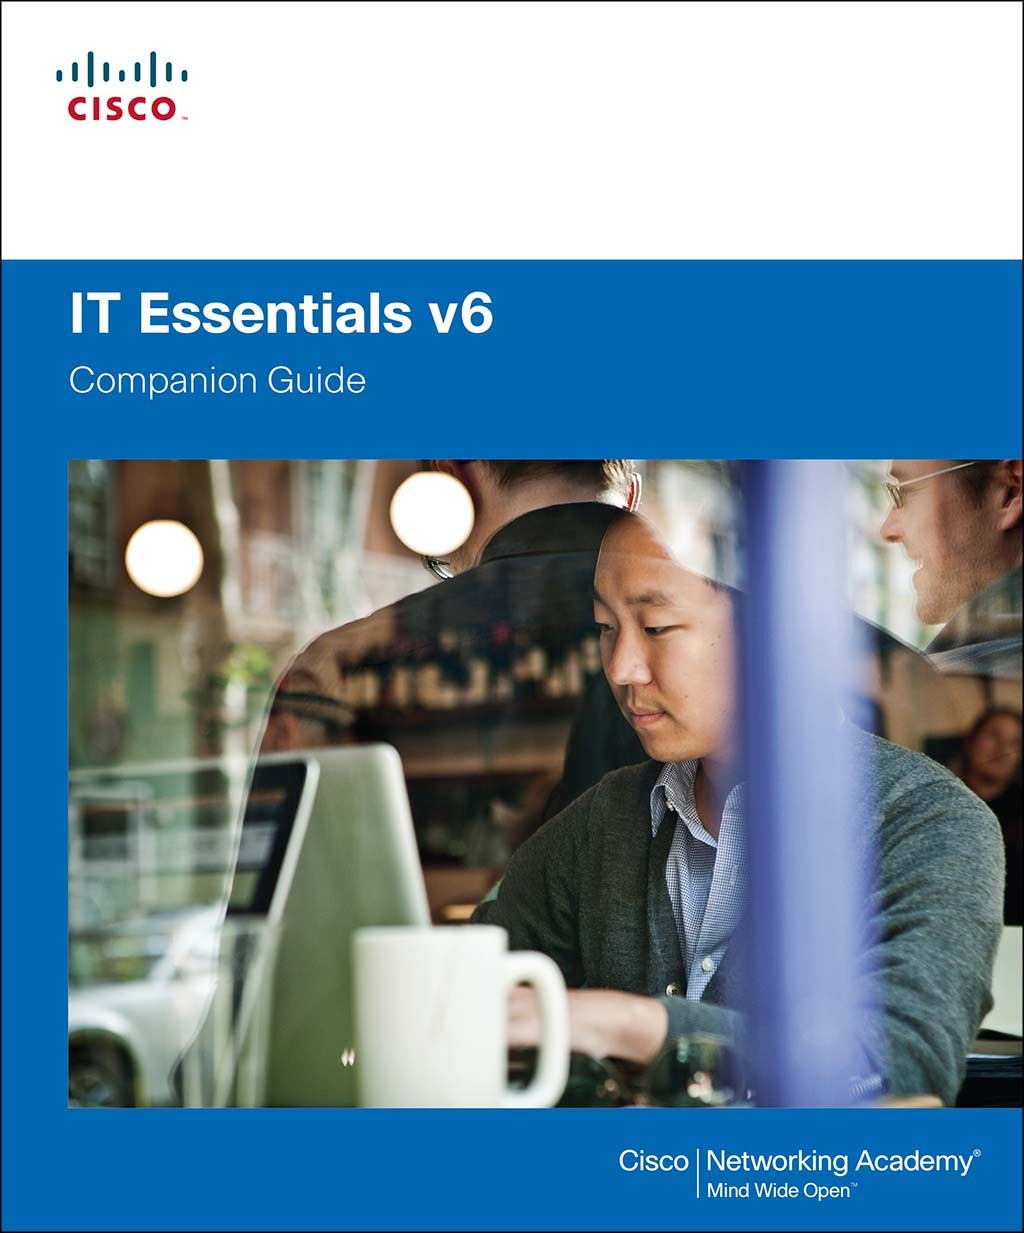 IT Essentials Companion Guide v6